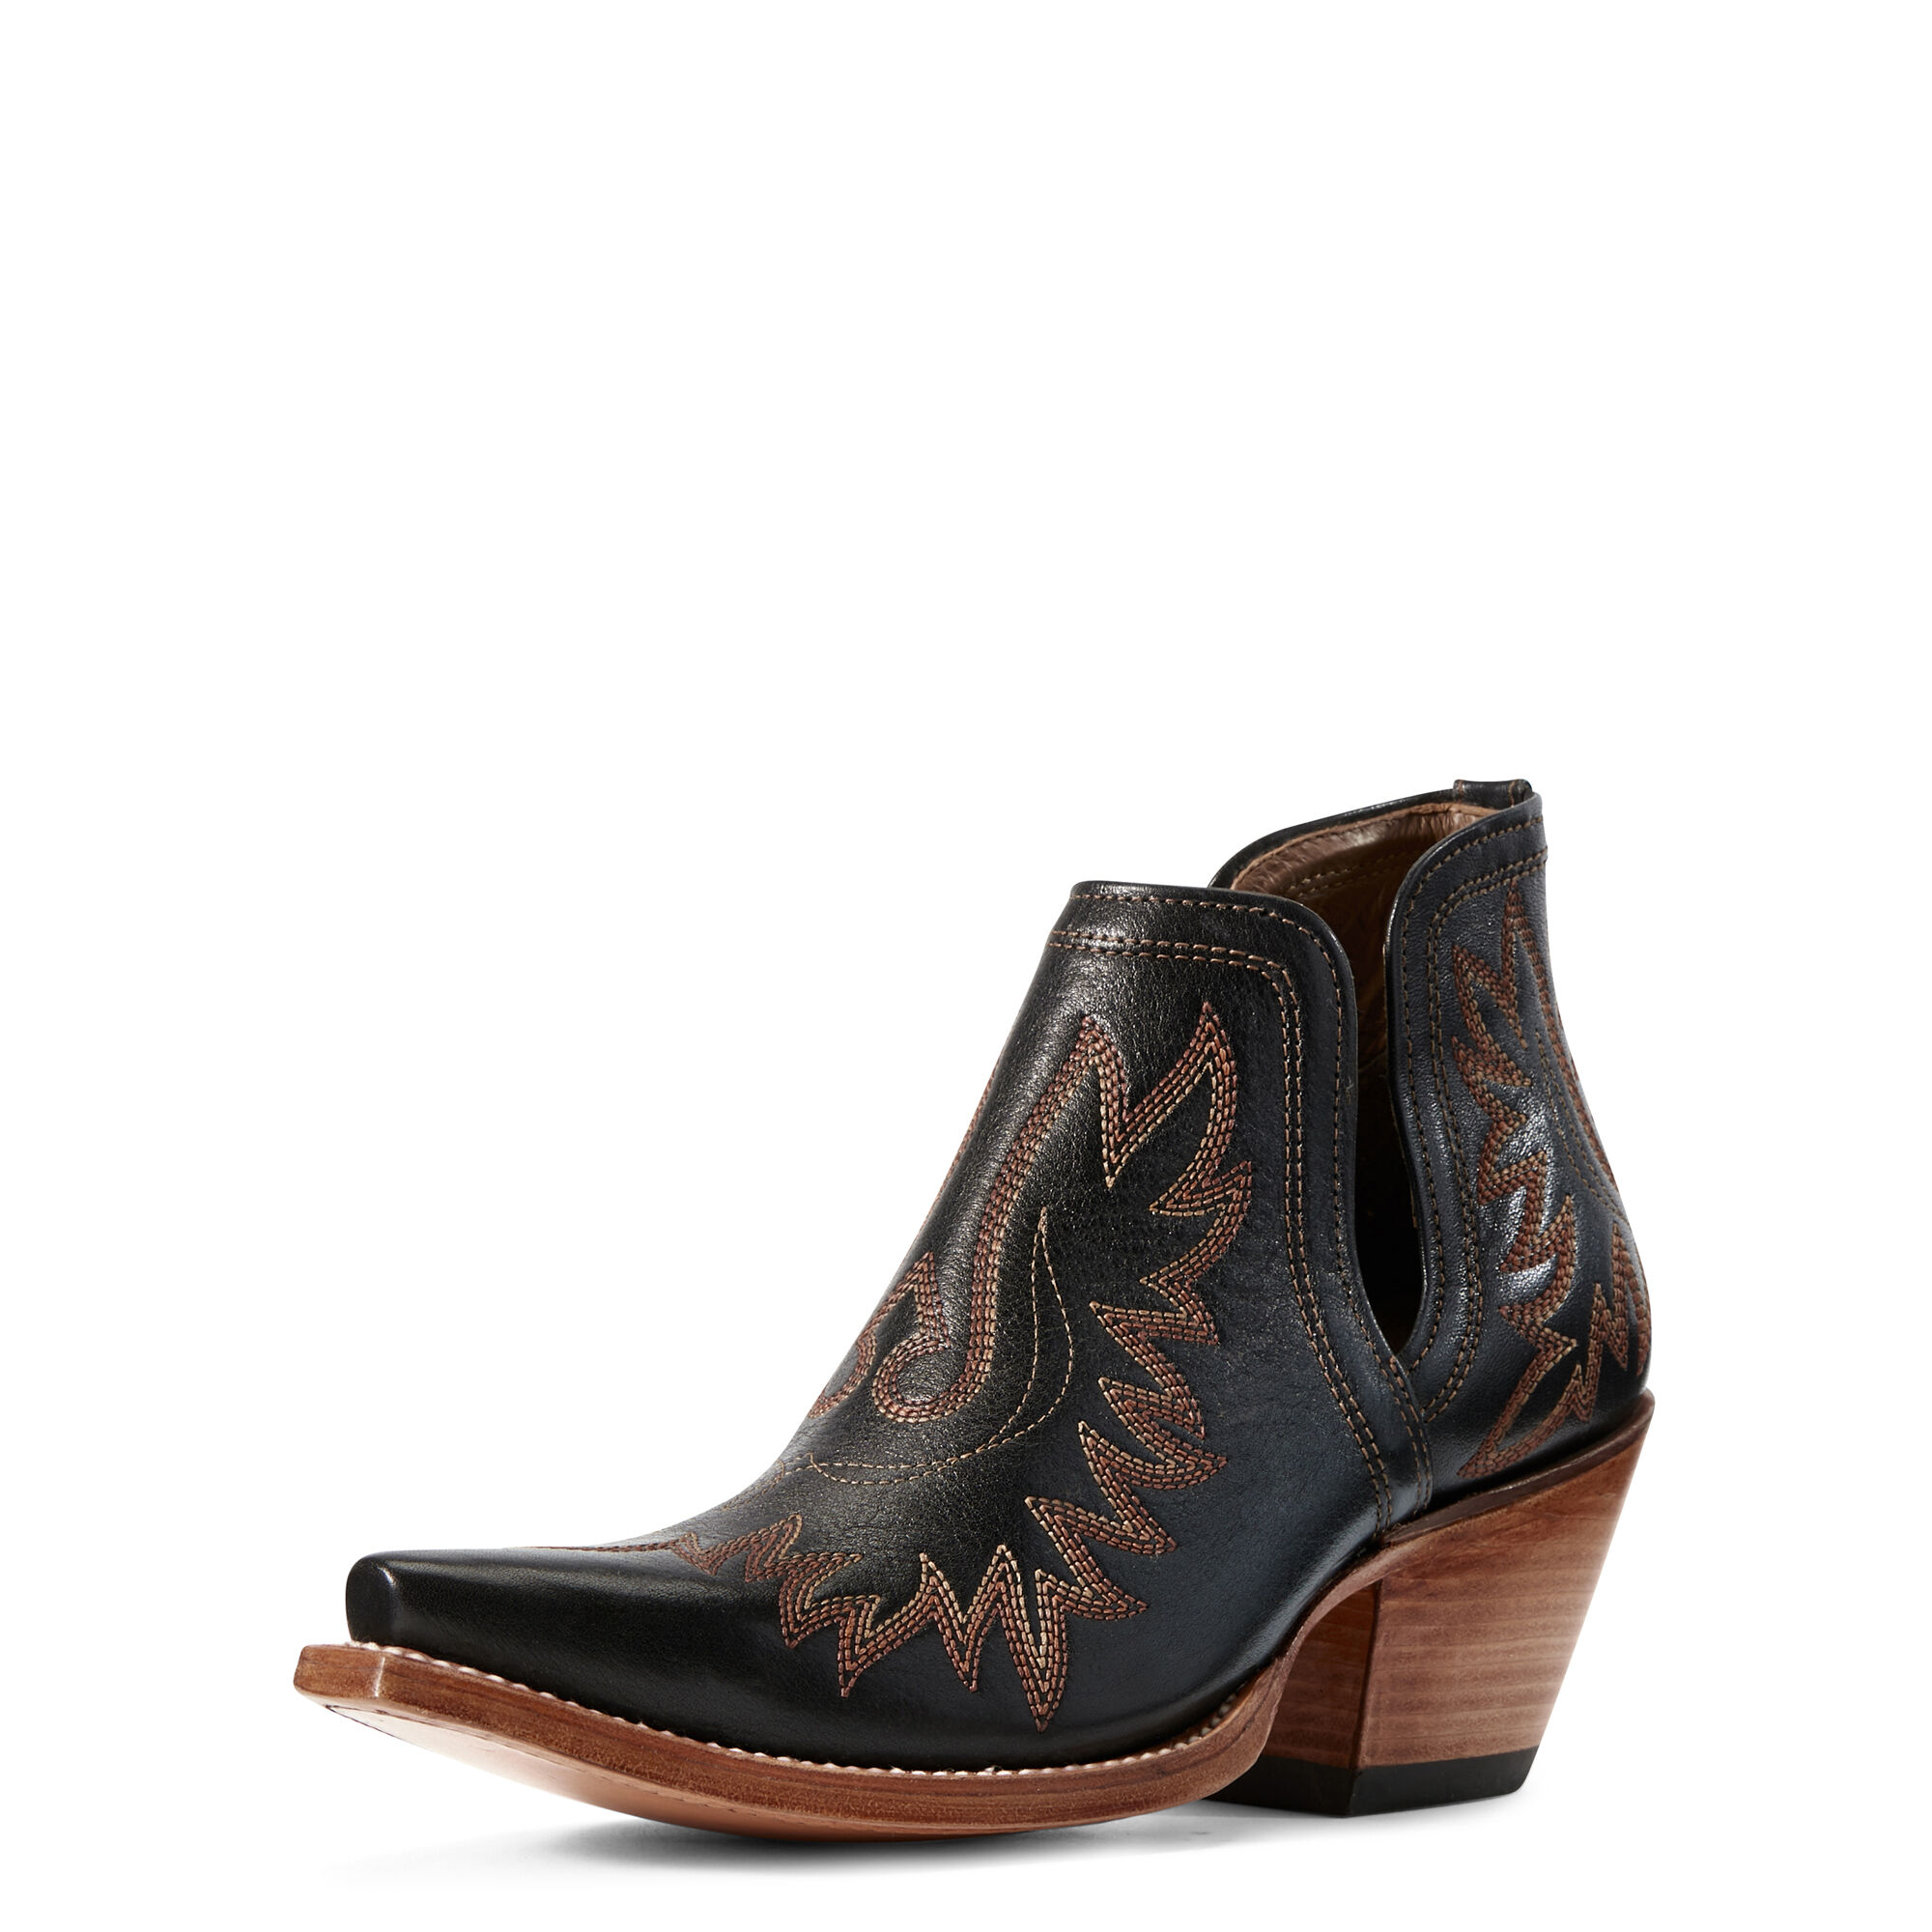 Chaussures Chaussures western femmeAriat western western Chaussures femmeAriat femmeAriat nPk80Ow